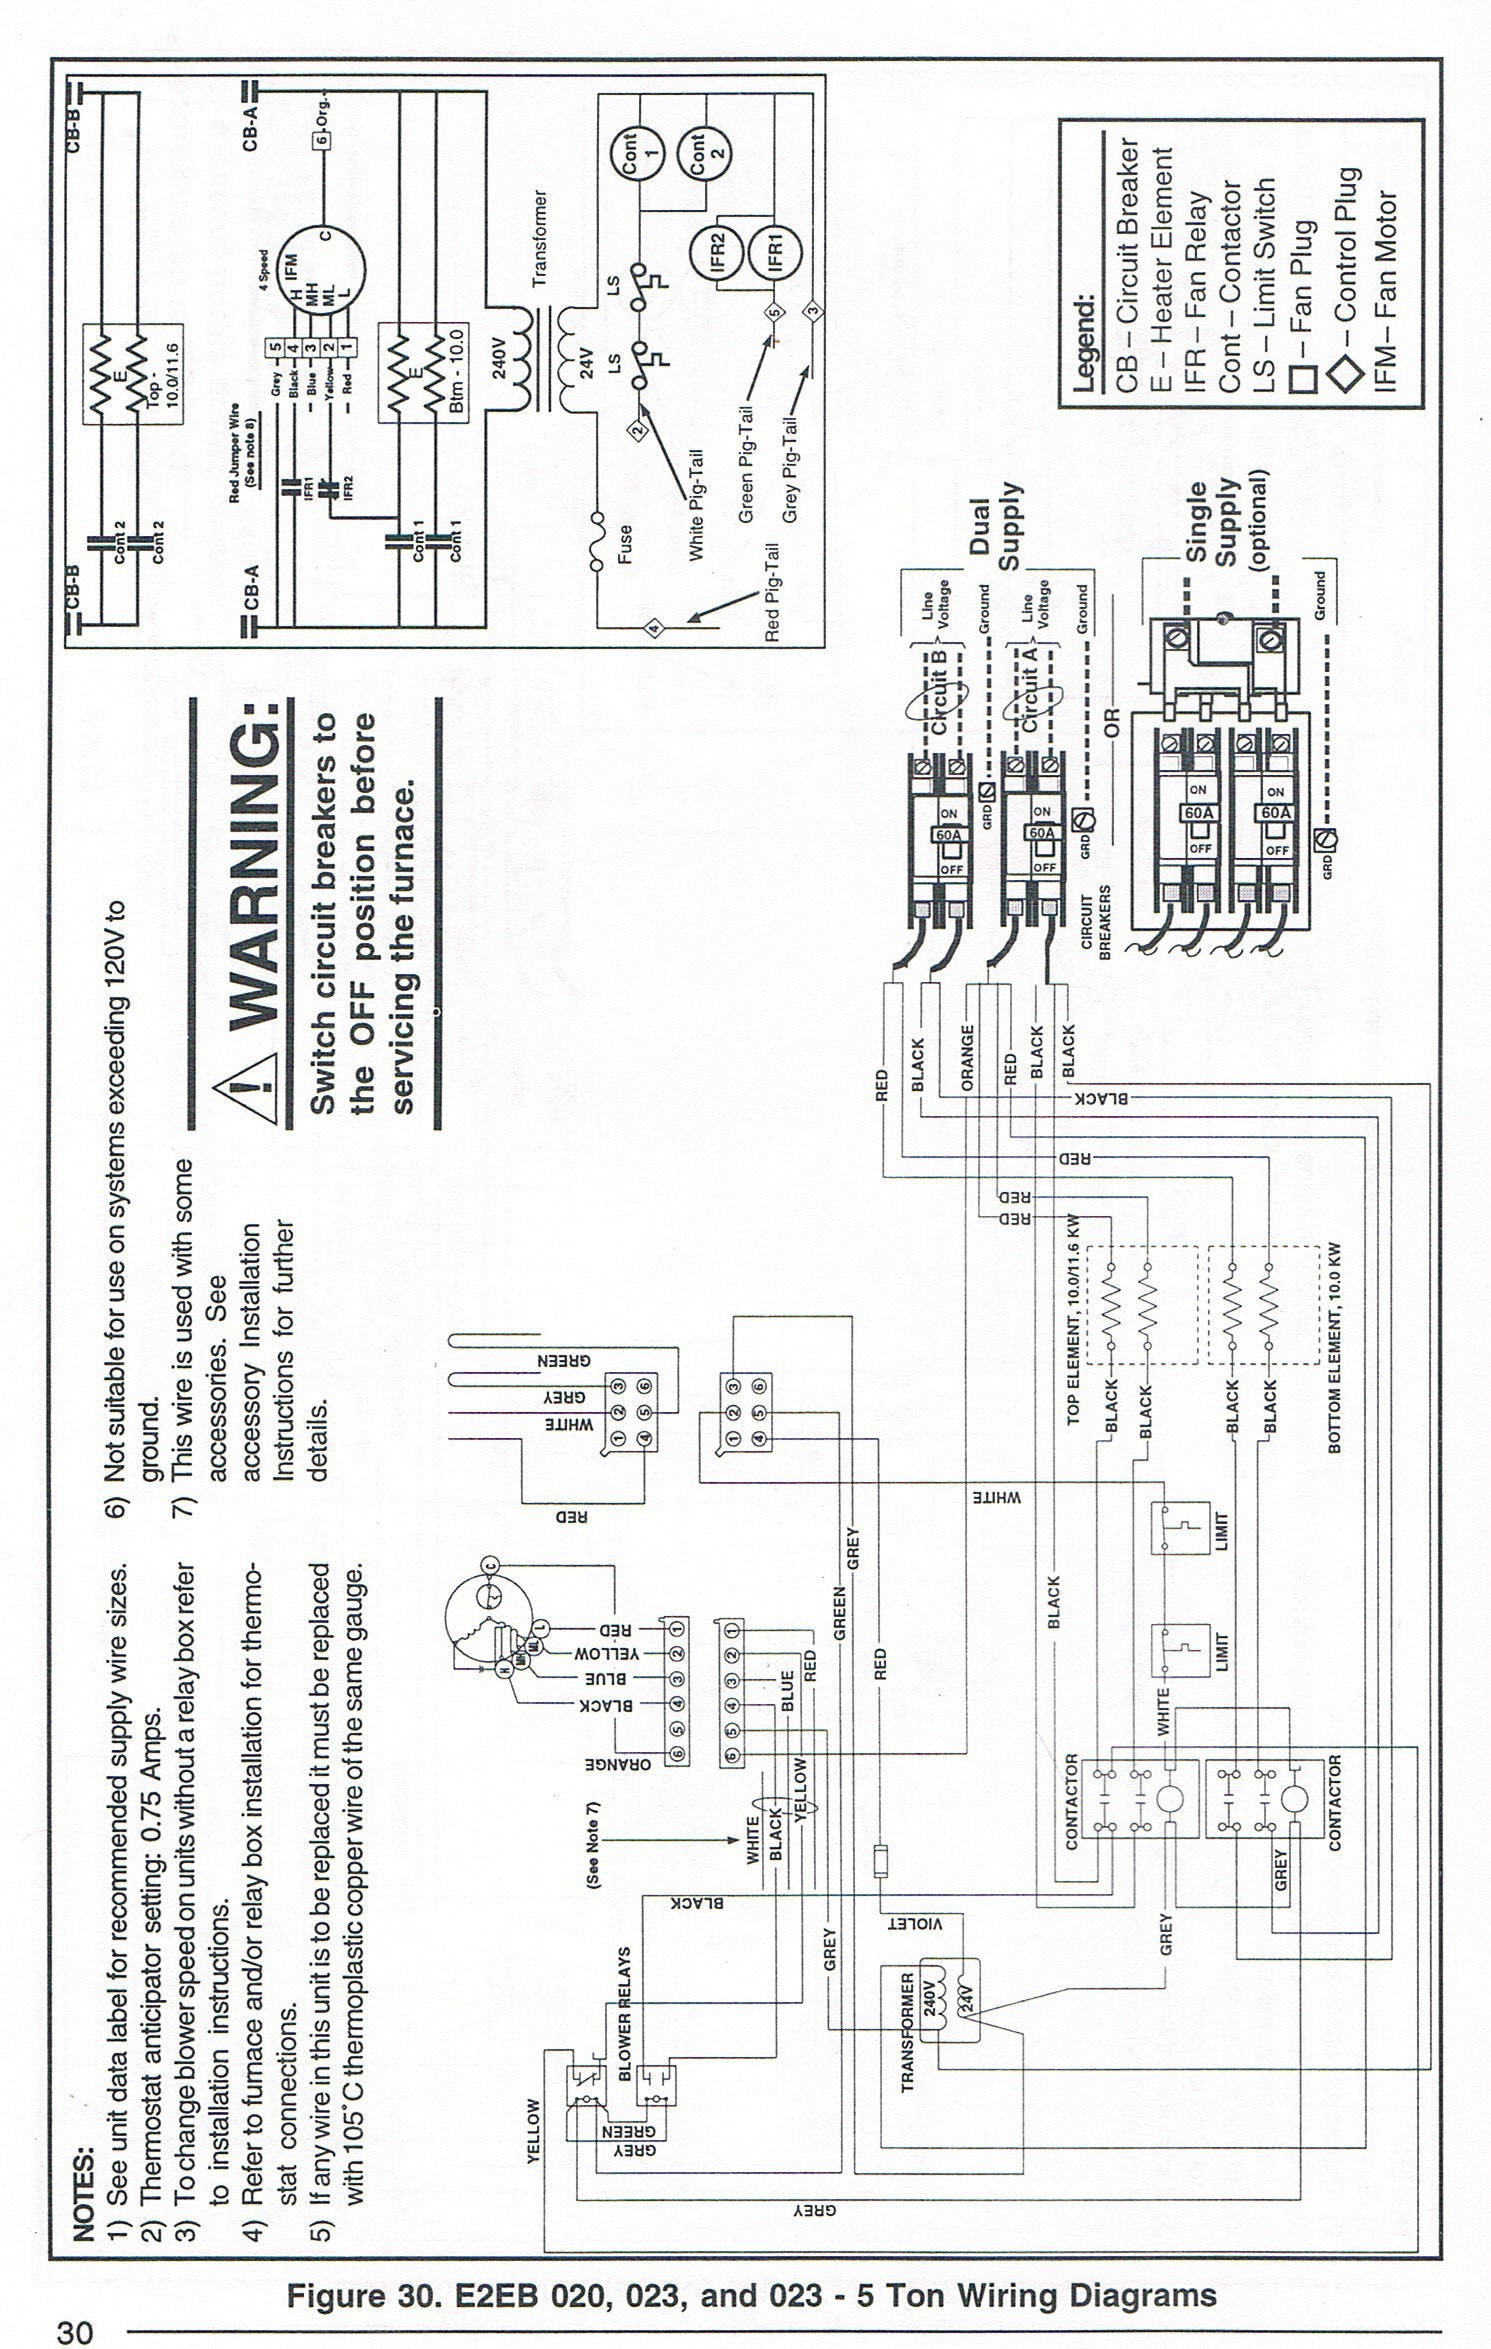 intertherm heaters wiring diagrams - 2000 nissan pathfinder fuse diagram  for wiring diagram schematics  wiring diagram schematics